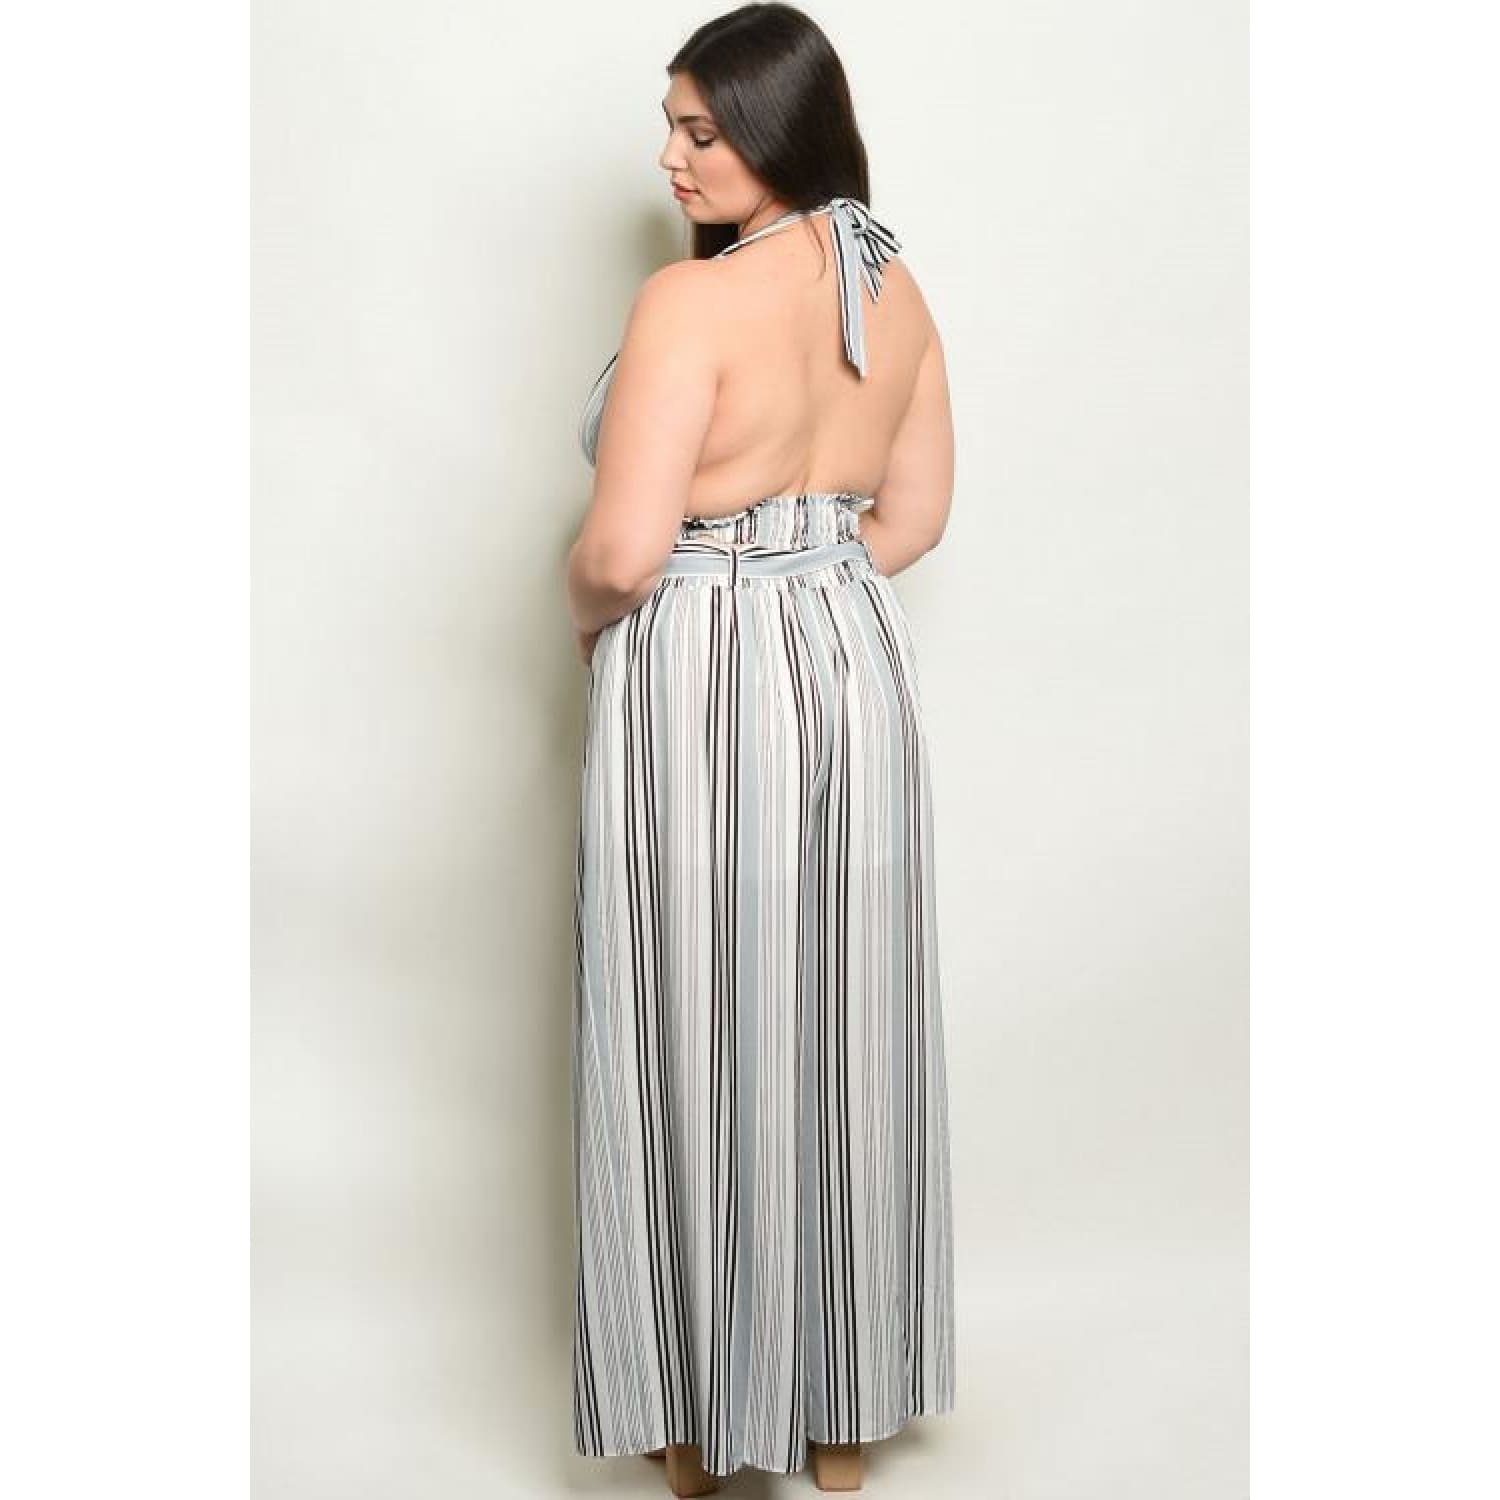 Grey Stripes Plus Pants Set - Best YOU by HTS